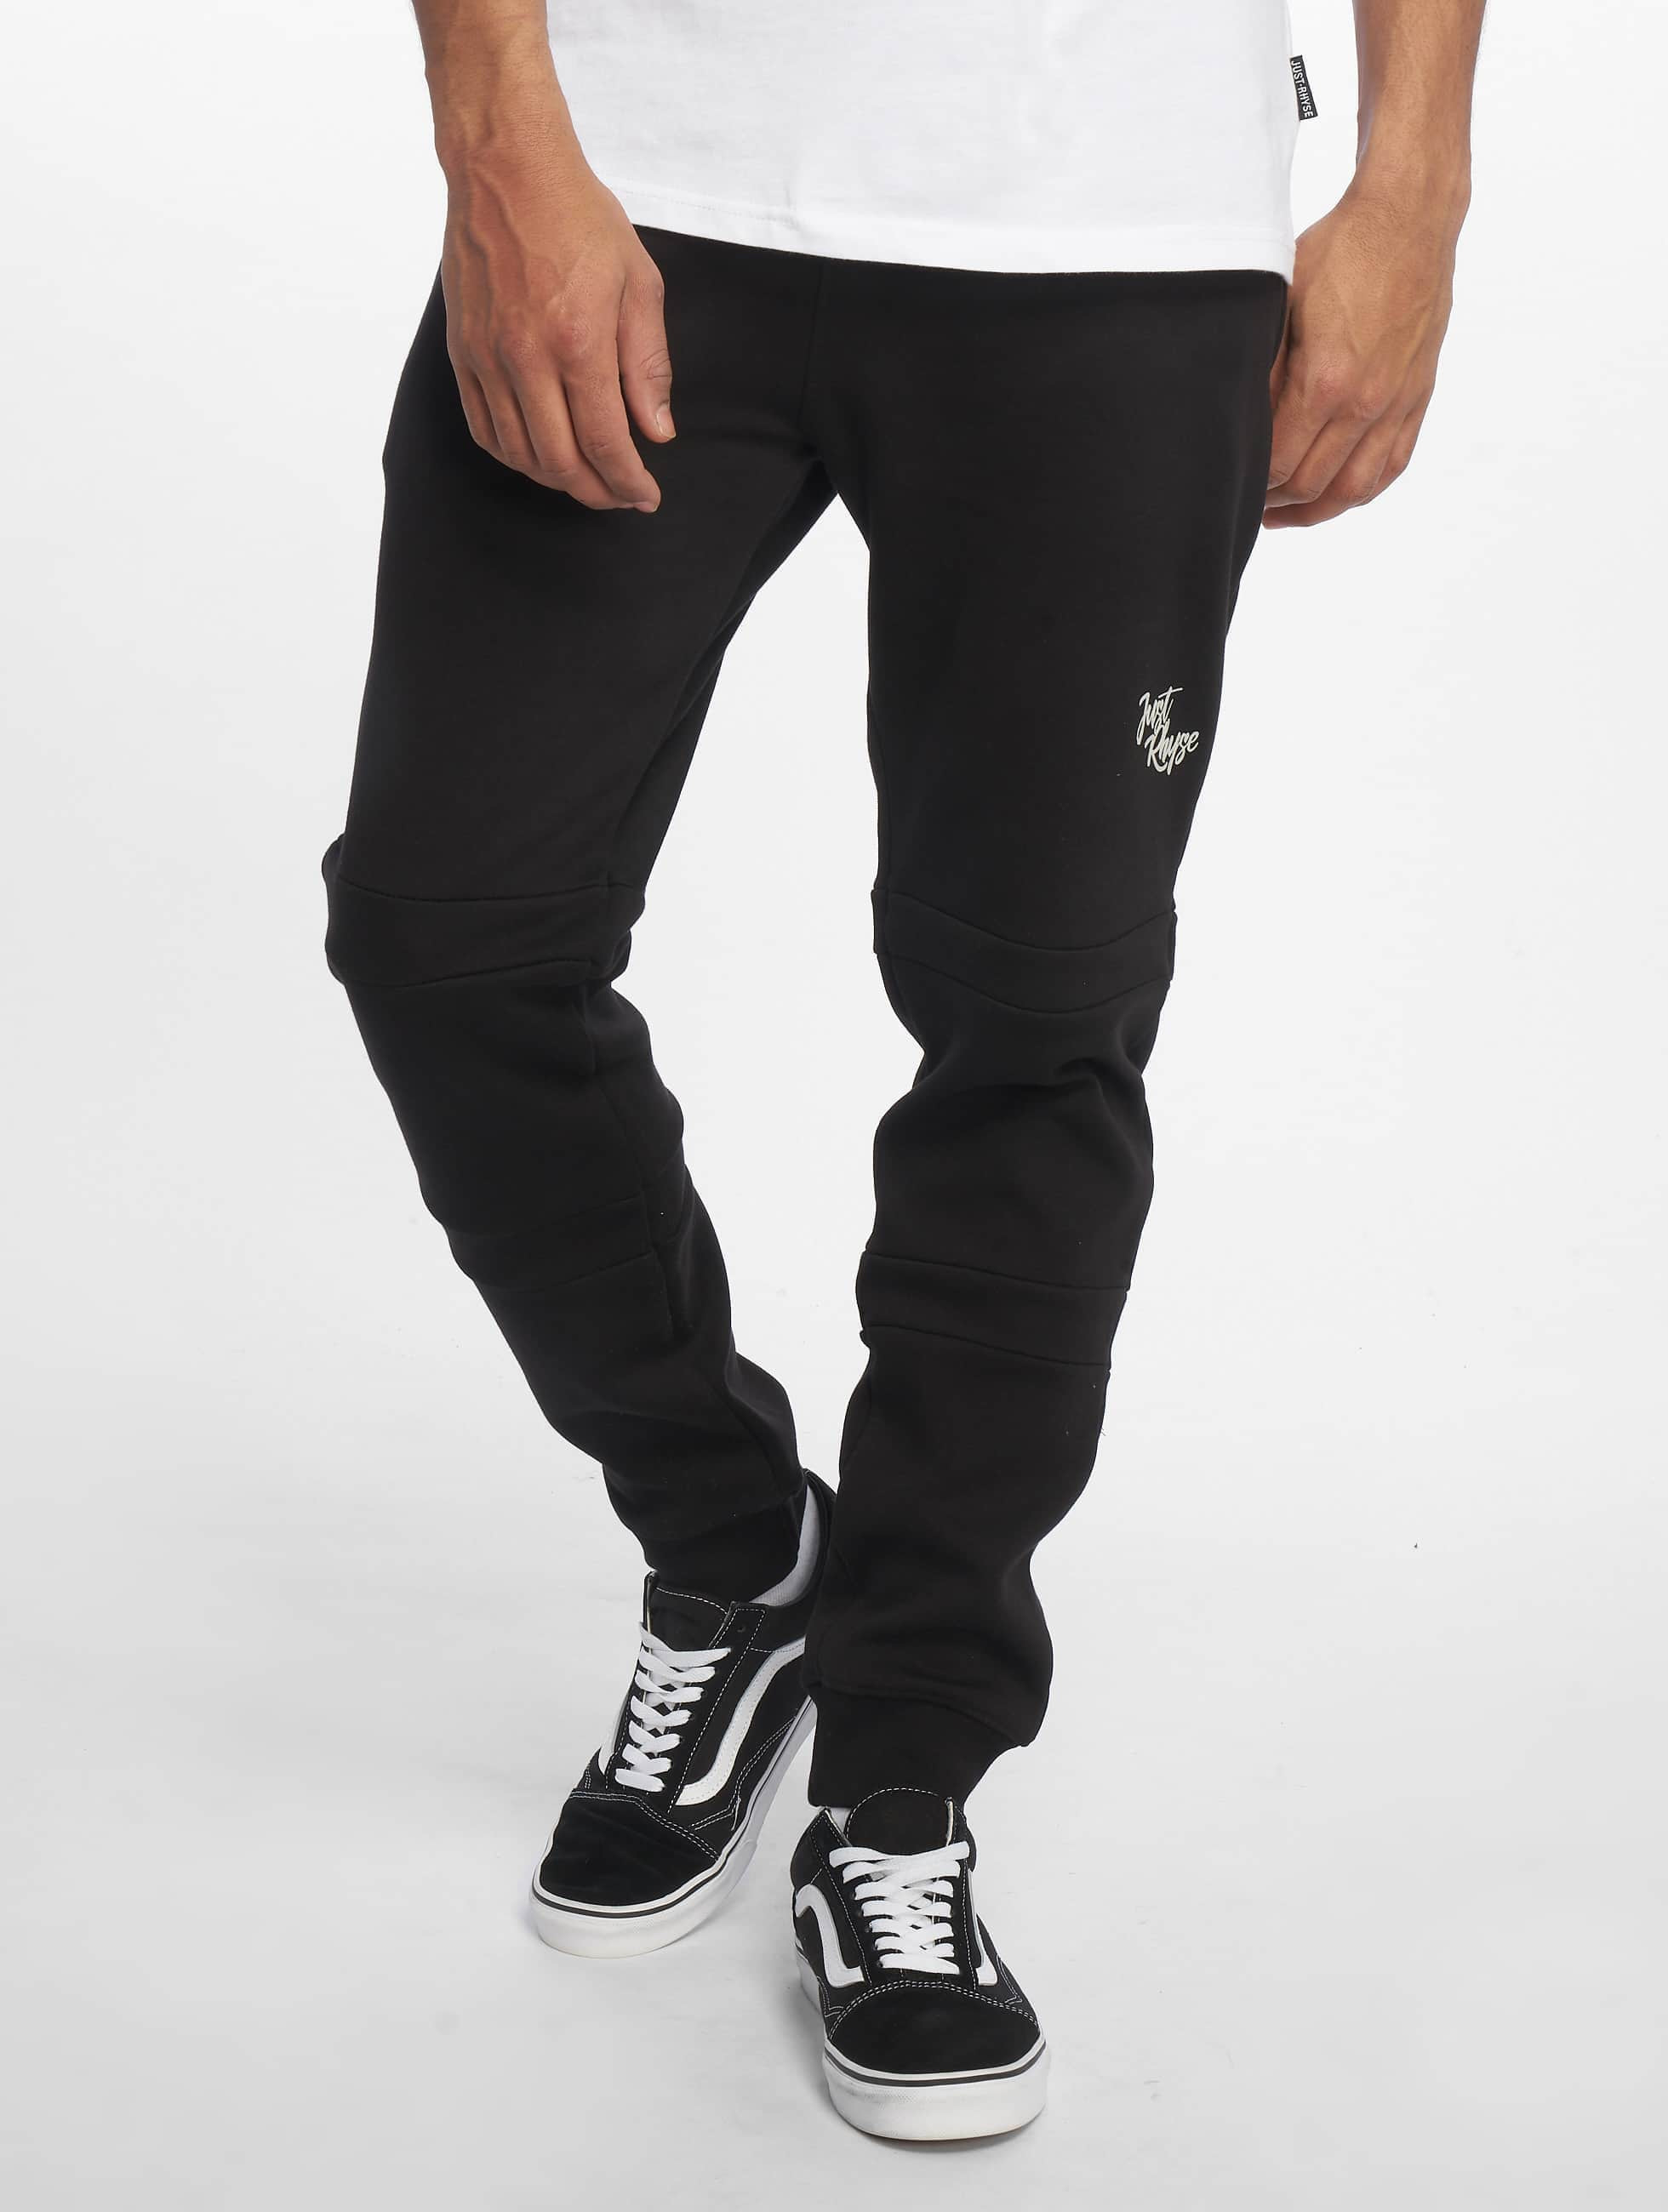 Just Rhyse / Sweat Pant Edgewater in black 3XL